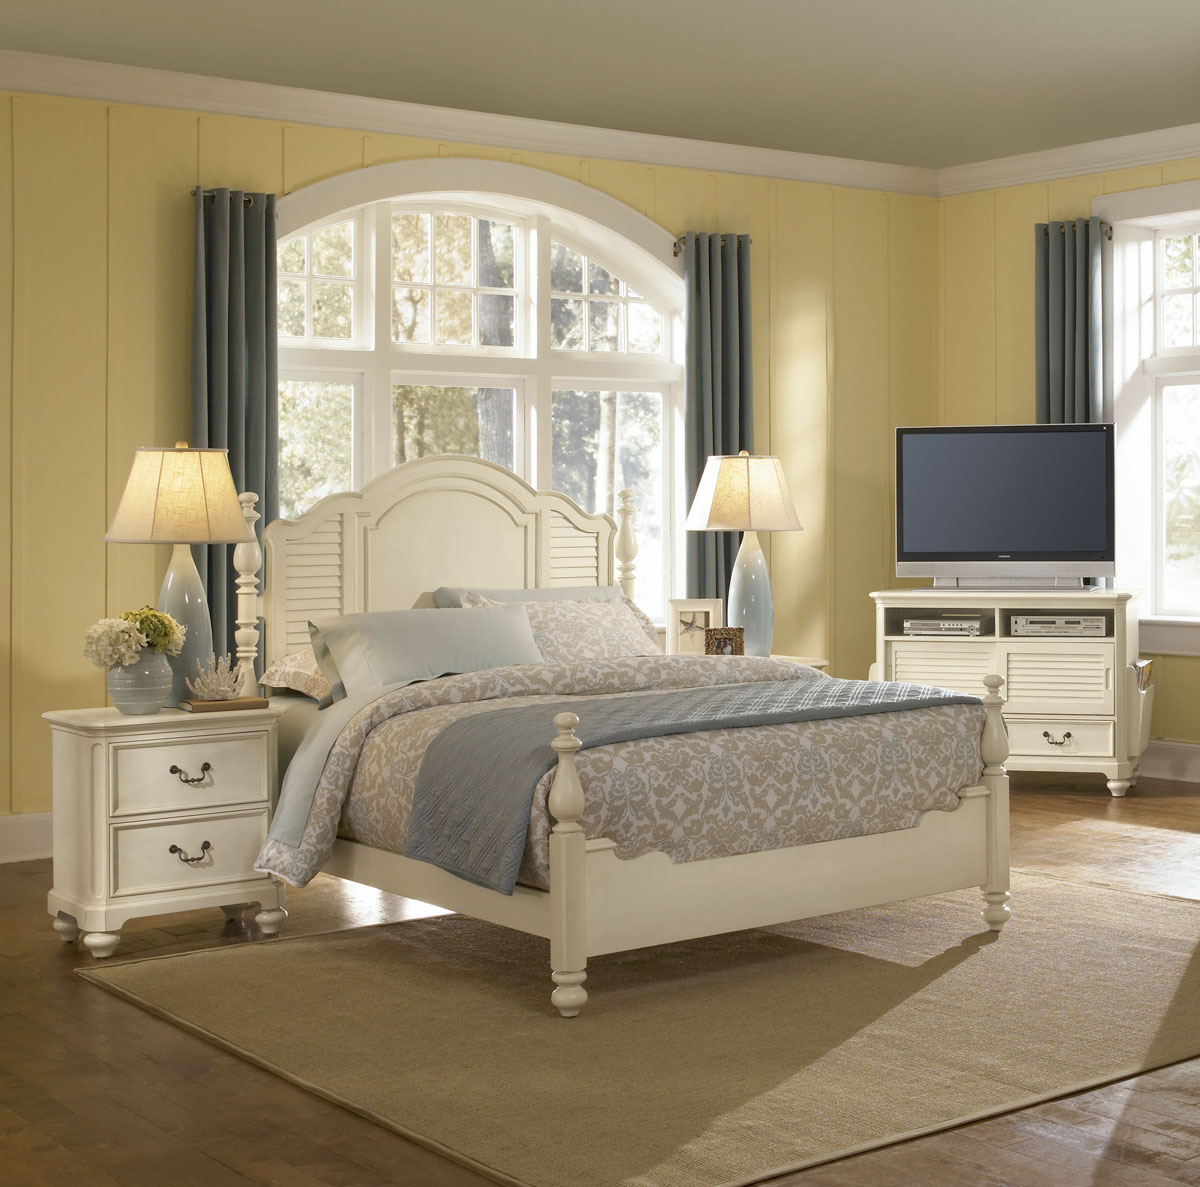 antique white bedroom furniture for kids photo - 3 - Antique White Bedroom Furniture For Kids Hawk Haven